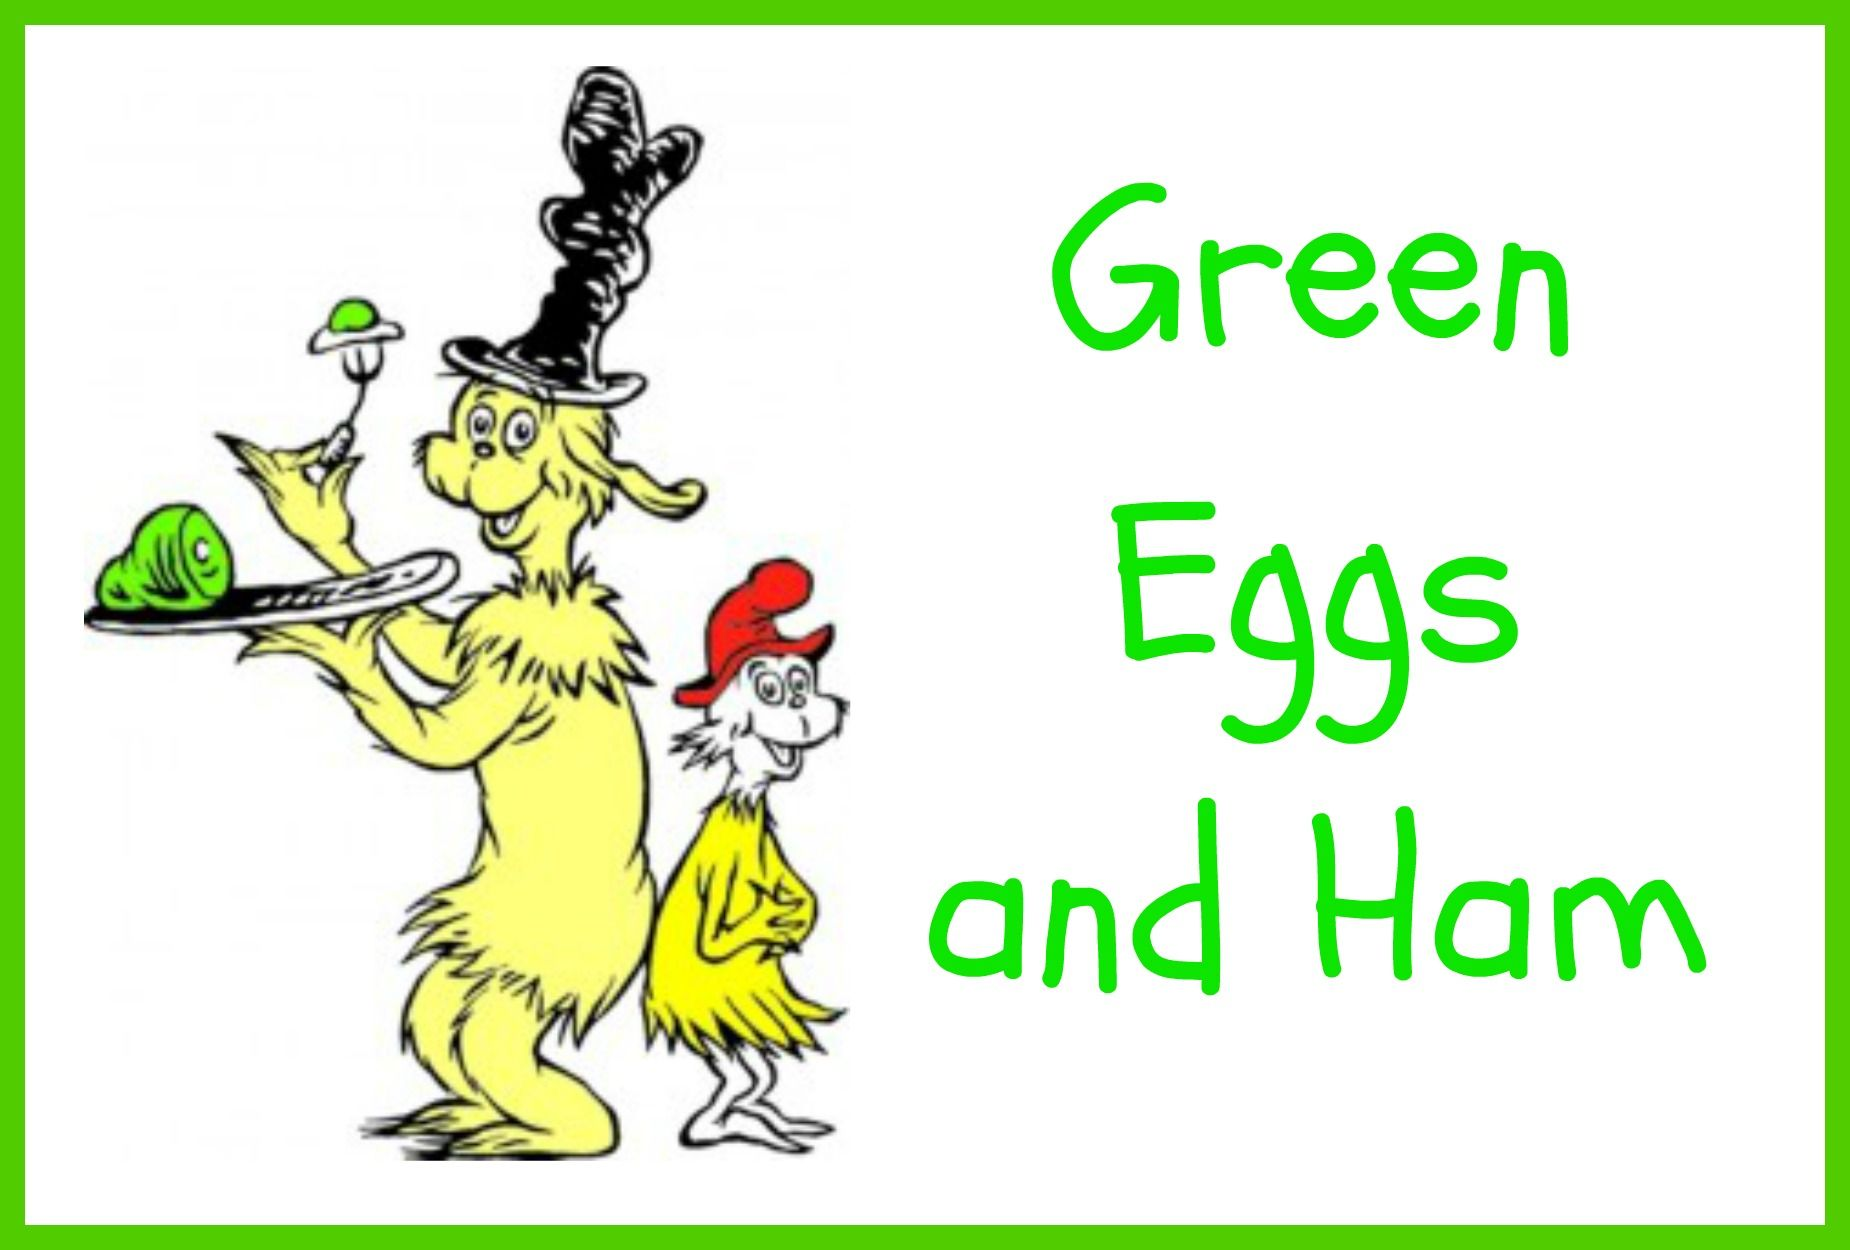 dr. seuss green eggs and ham food label | Preschool | Pinterest ...